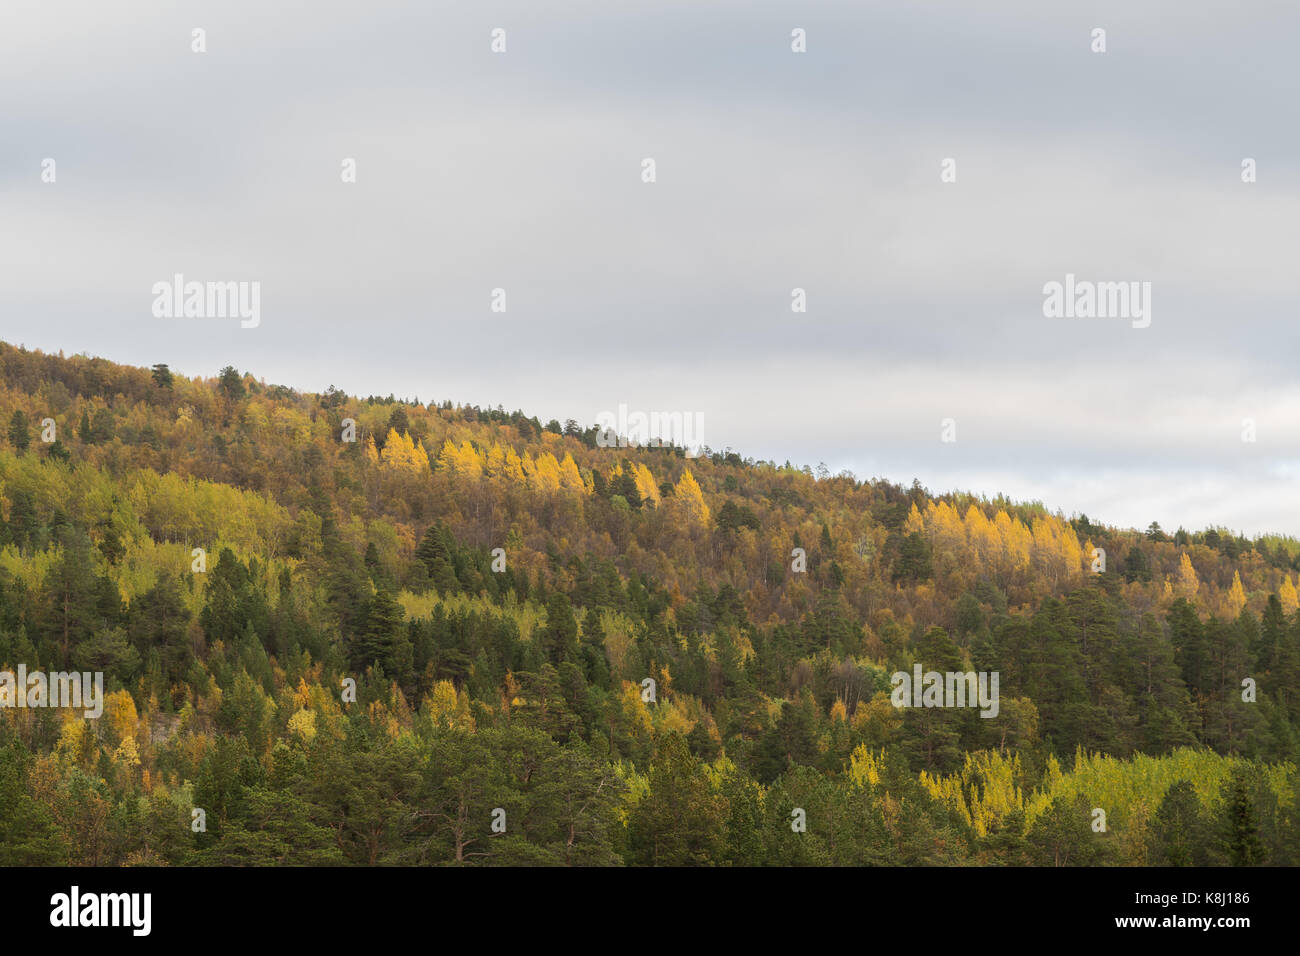 forest-on-hillside-with-different-trees-